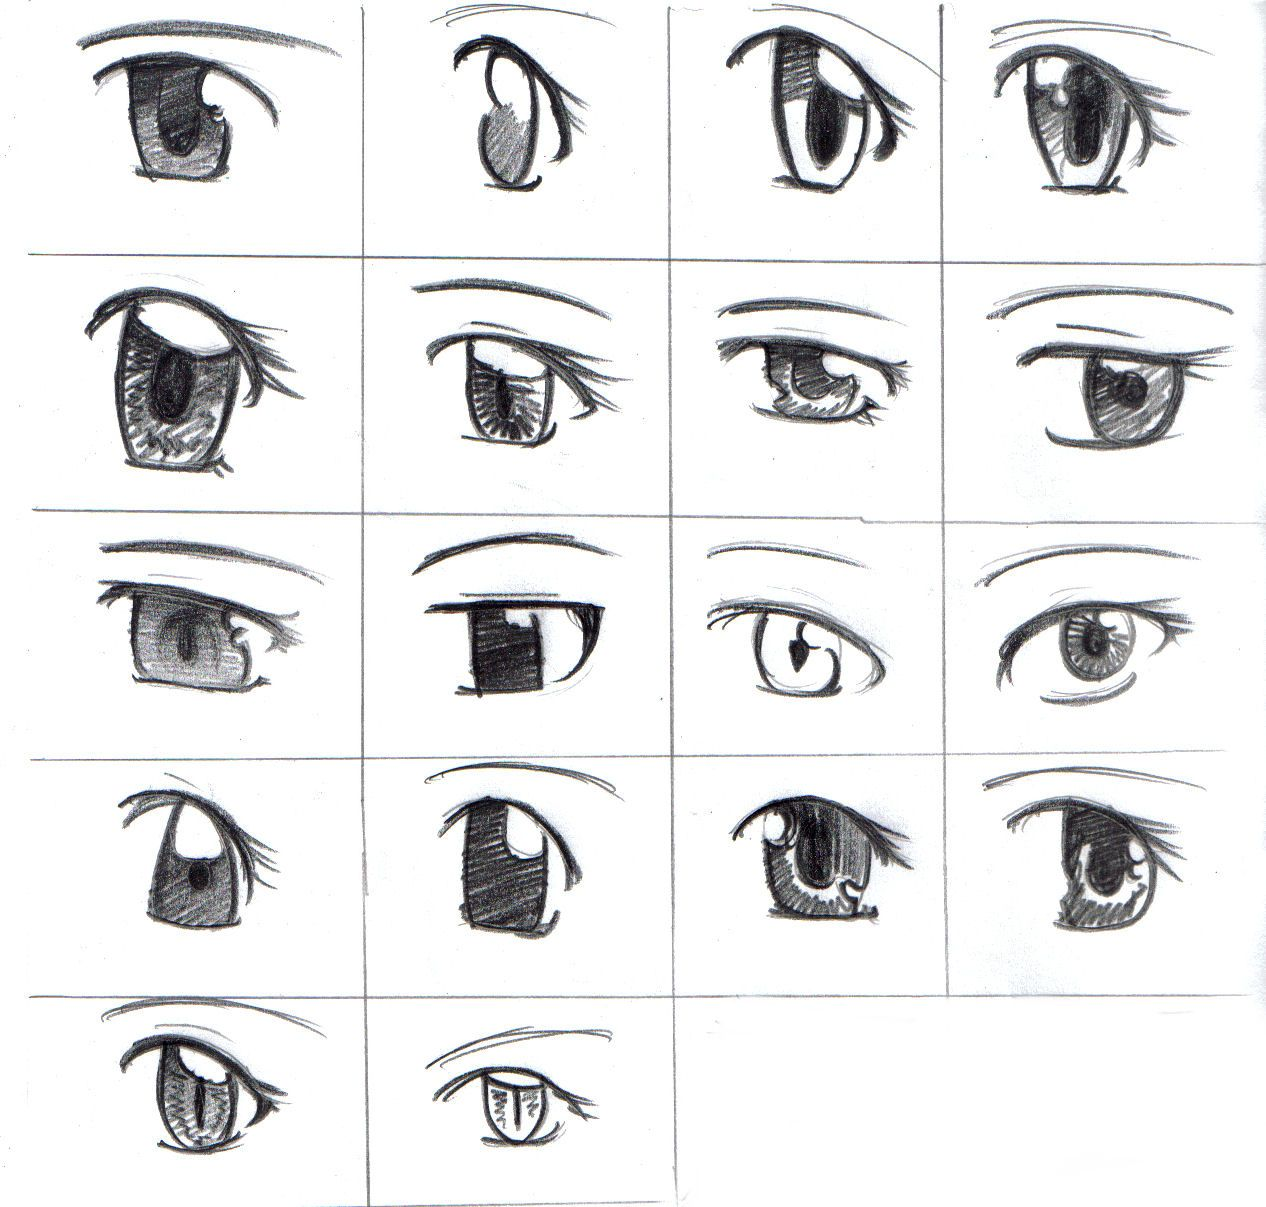 Scribble Eyes Drawing : How to draw anime eyes this image show some examples of